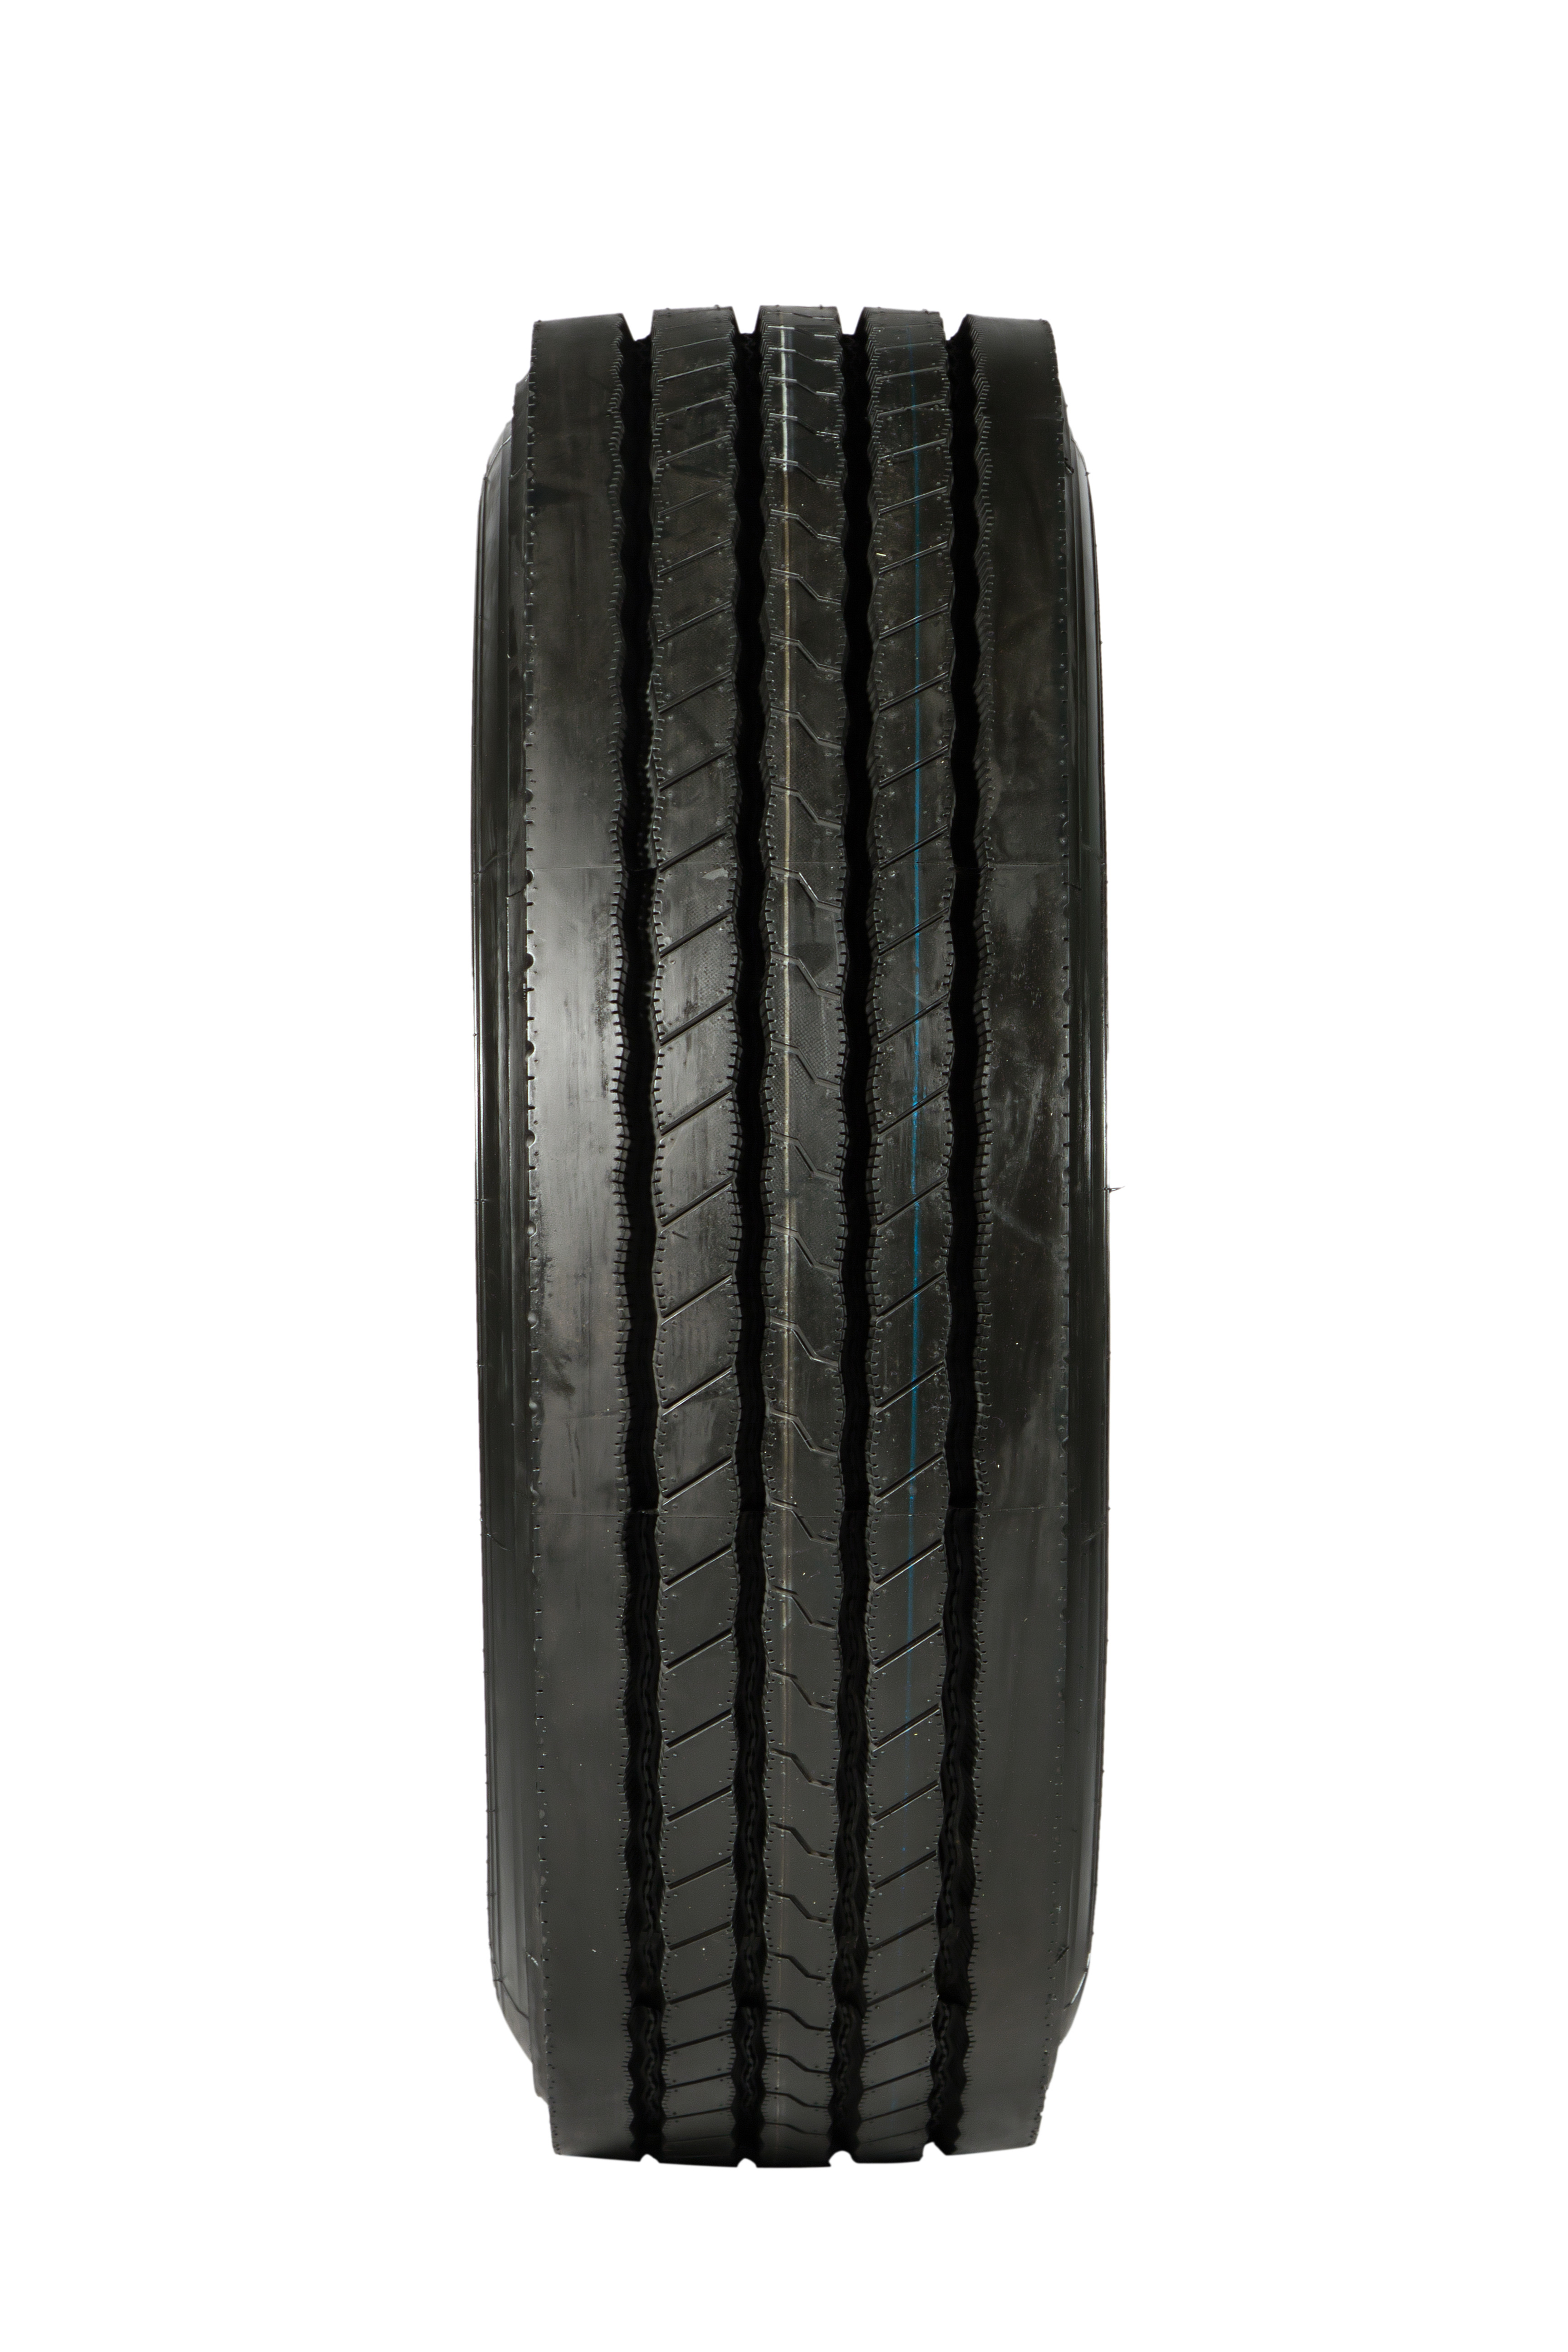 Nama Touts Performance of NF104 Truck Tire